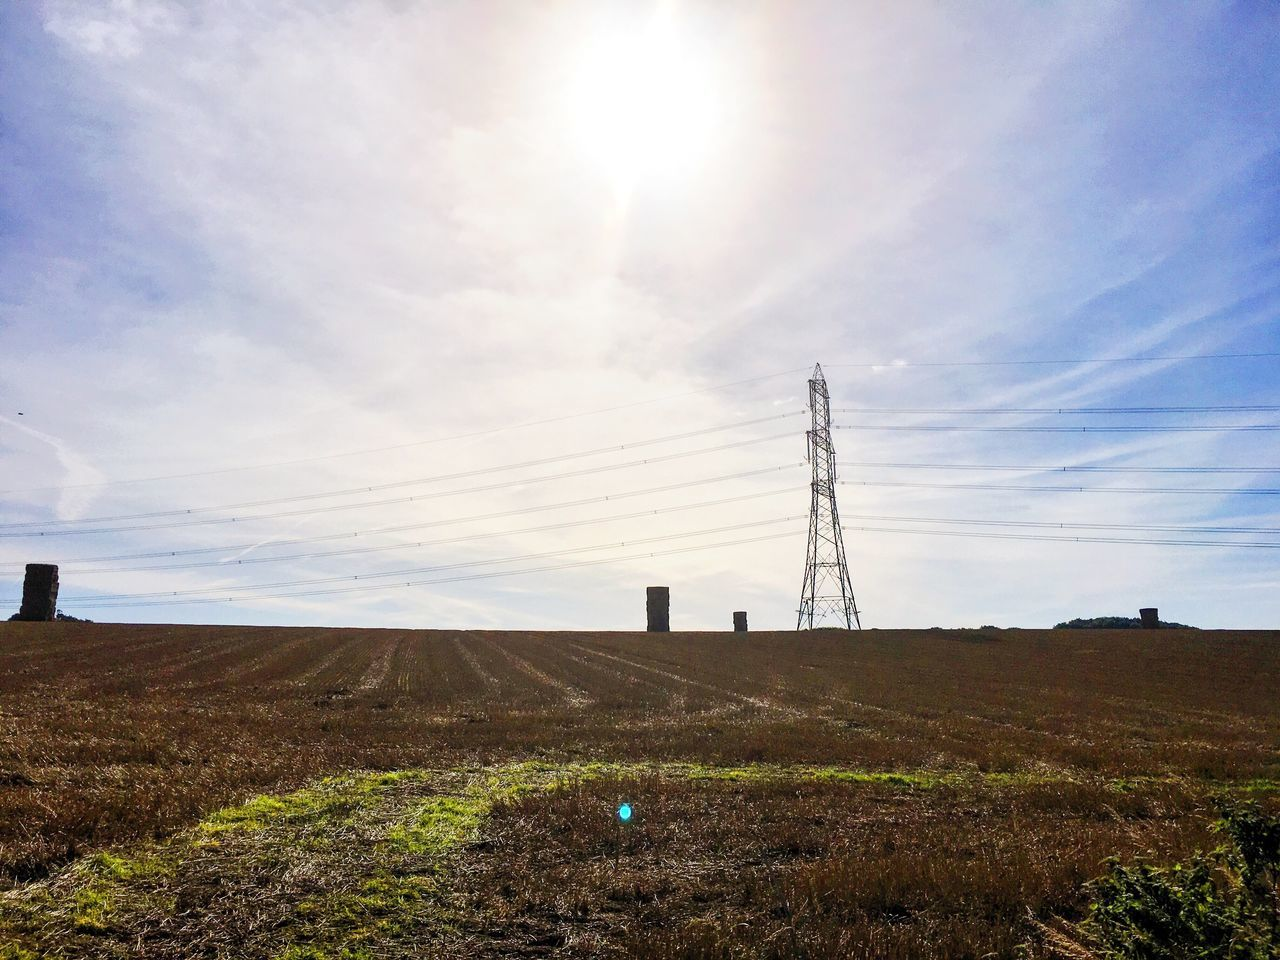 Giant Haystack from Brantingham Sunny Electricity Pylon Power Line  Landscape Sky Sun First Eyeem Photo